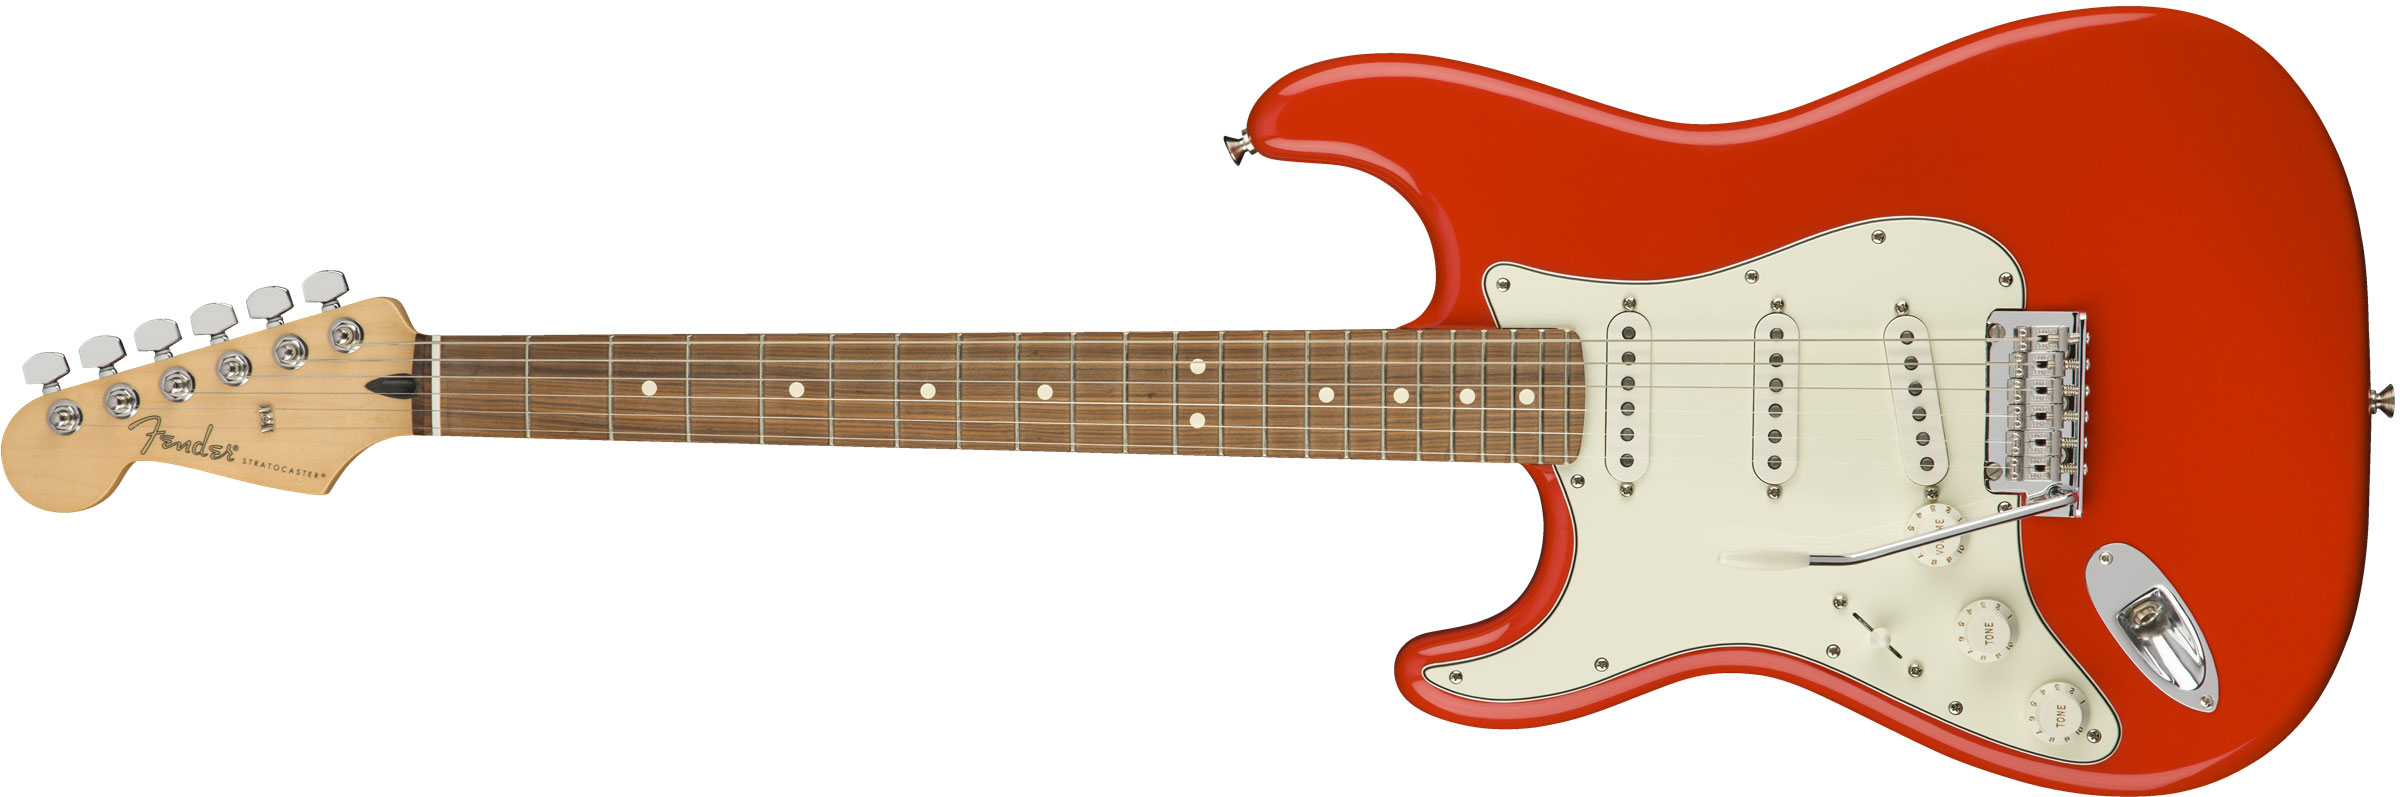 GUITARRA FENDER 014 4513 - PLAYER STRATOCASTER LH PF - 525 - SONIC RED